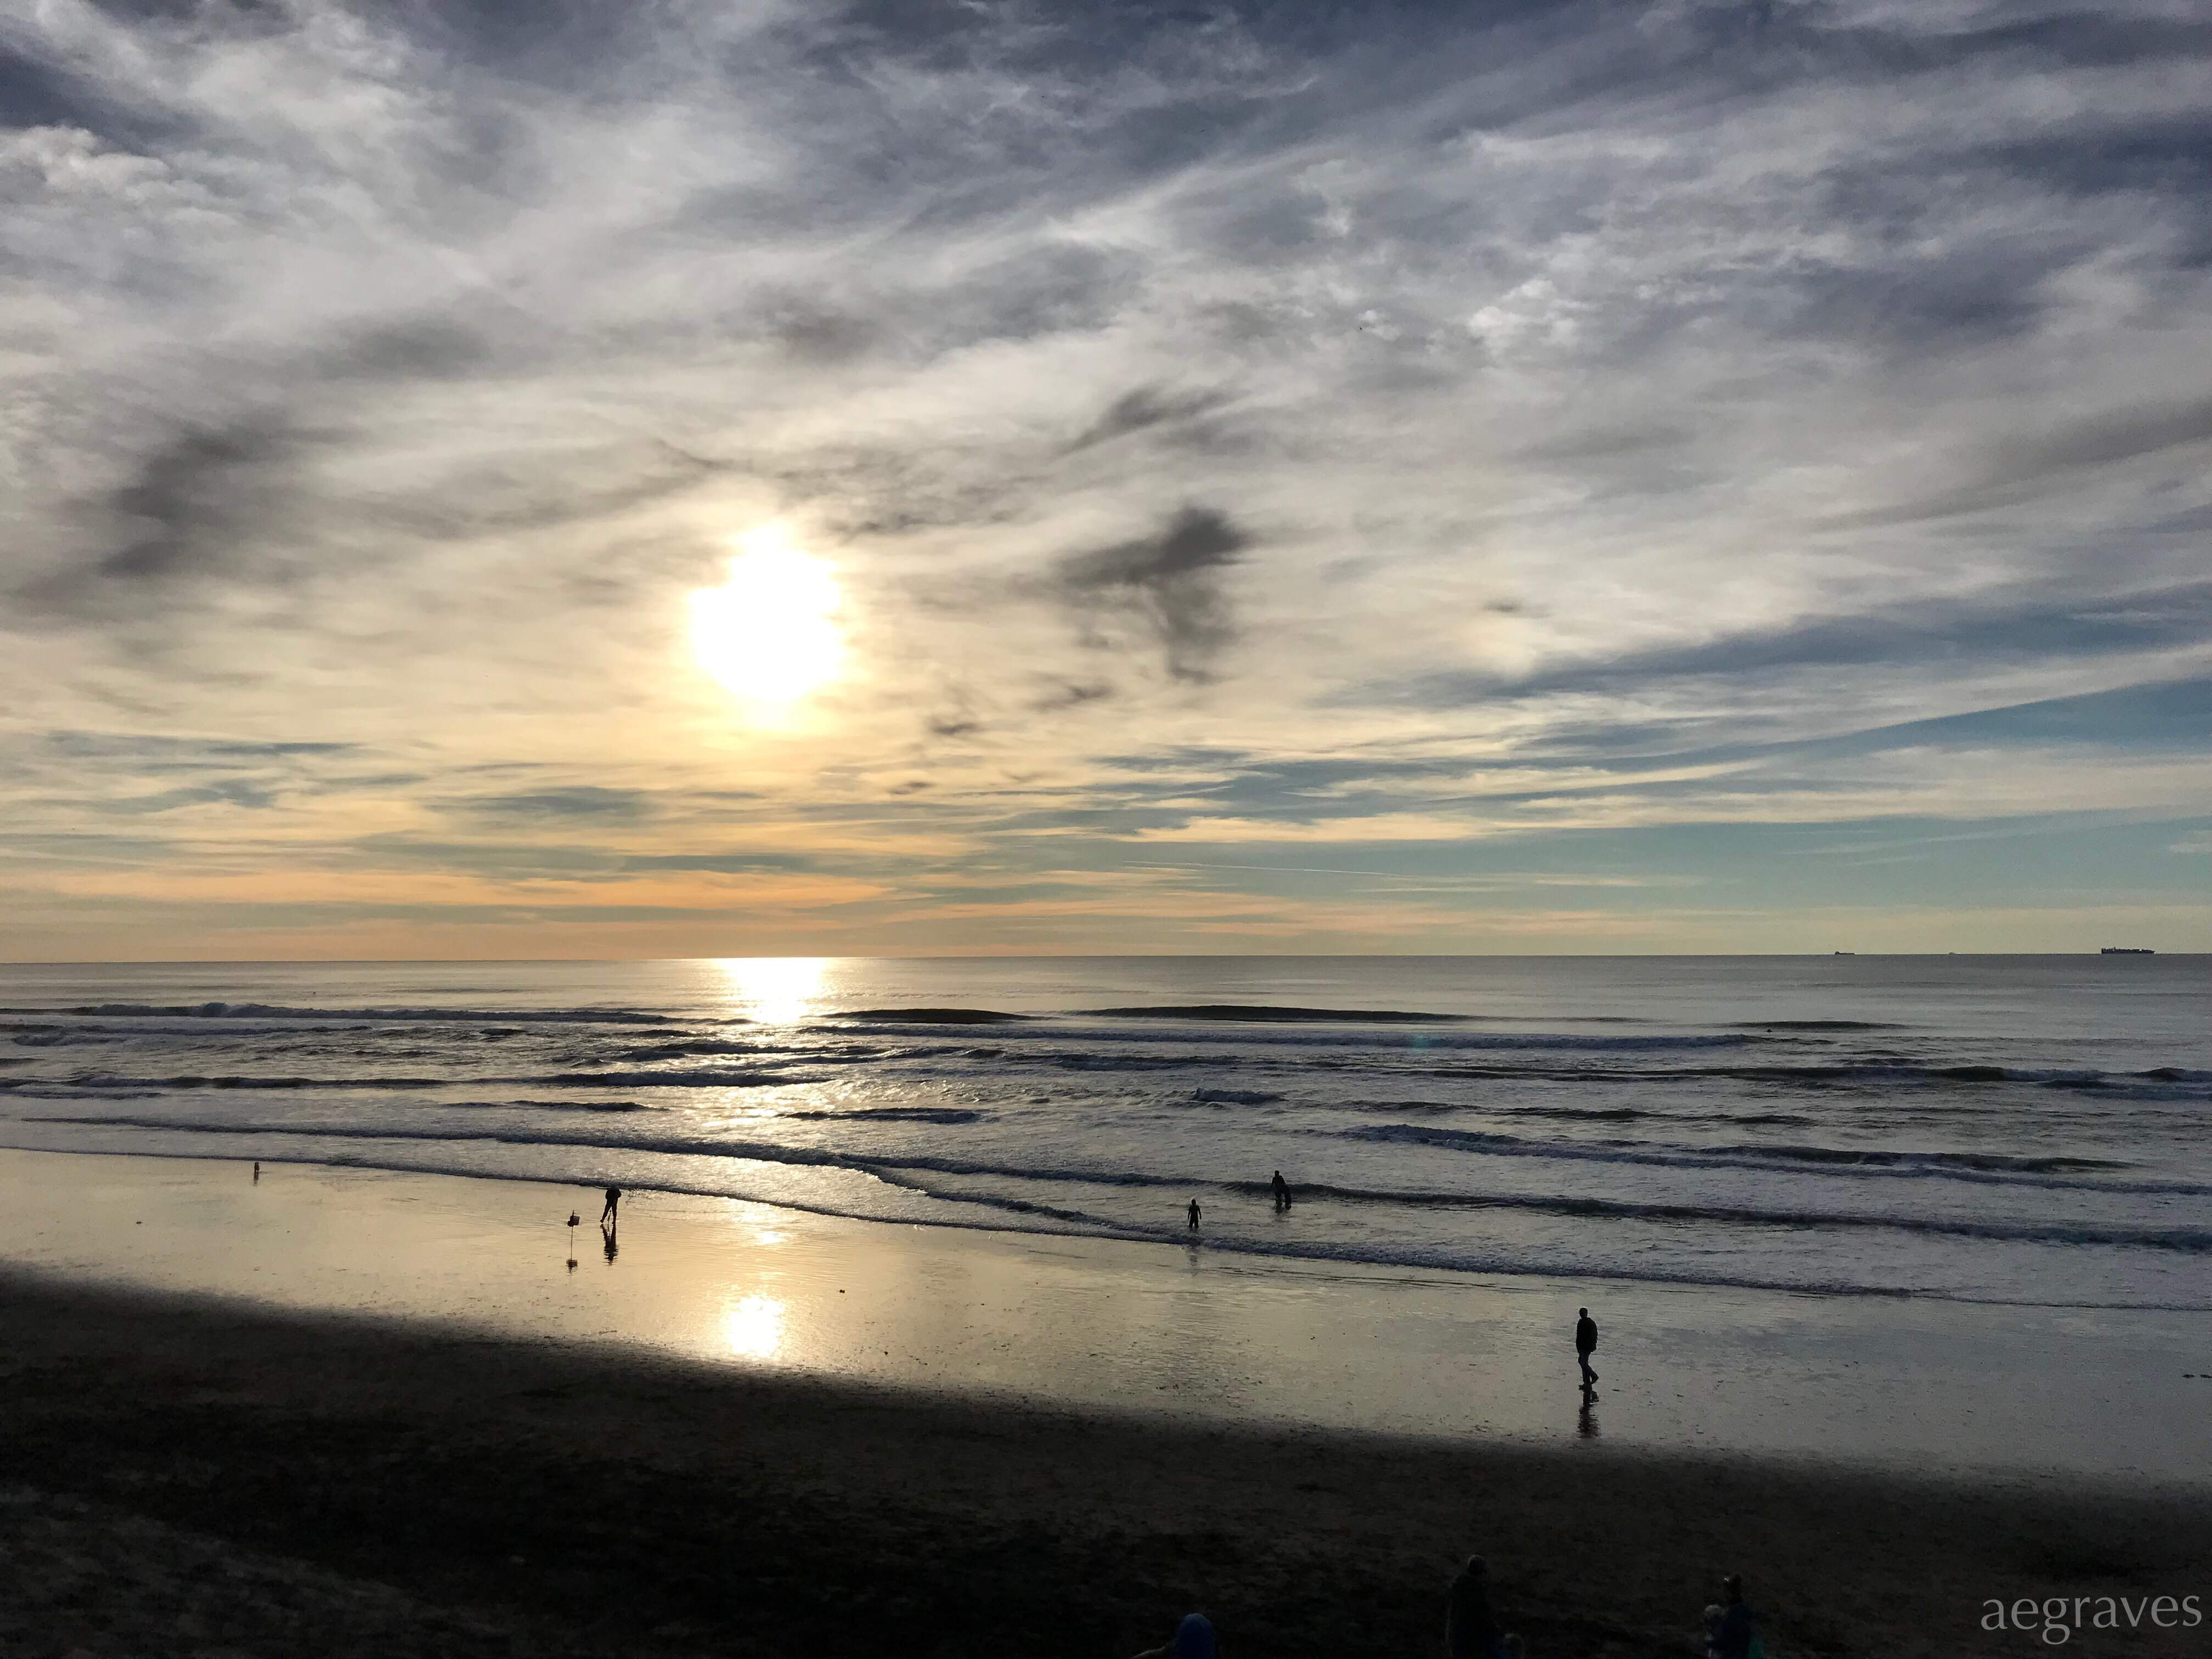 The evening sun on New Year's Day 2019 in San Francisco by A.E. Graves